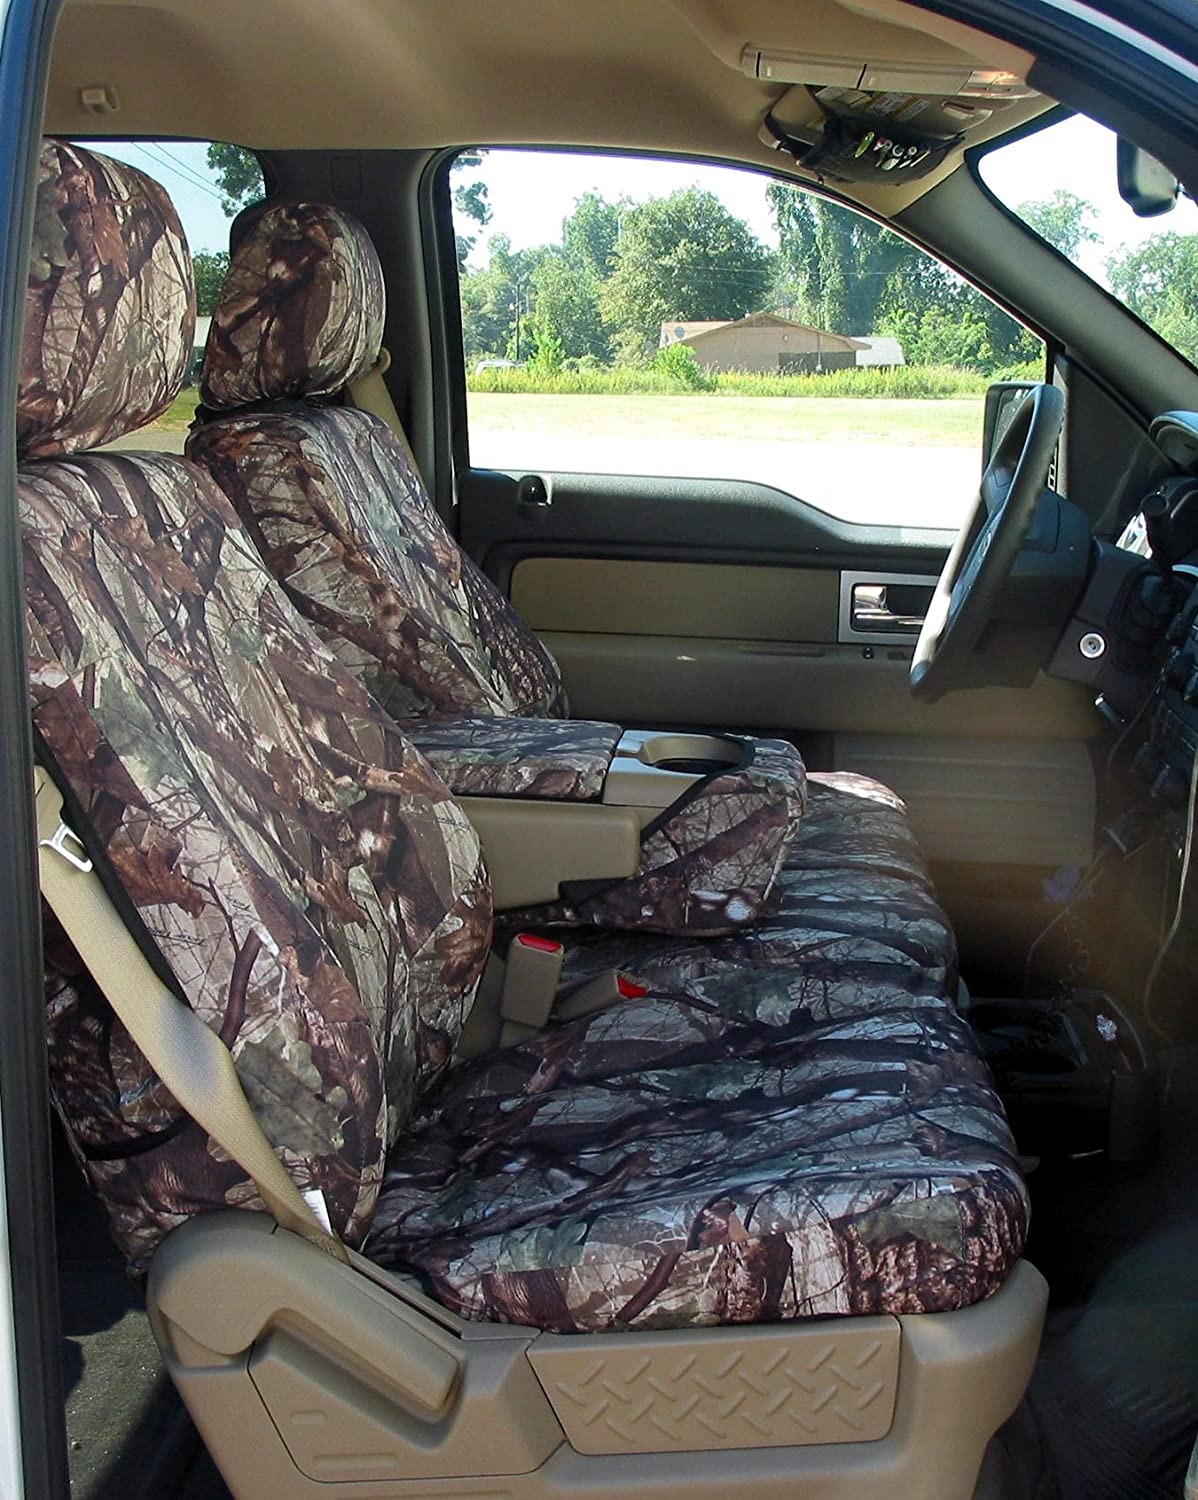 Miraculous Exact Seat Covers Fd49 Ds1 E 2010 Ford F150 Xlt Super Crew Front And Back Seat Set Custom Exact Fit Seat Covers Ds1 Camo Waterproof Endura Gmtry Best Dining Table And Chair Ideas Images Gmtryco